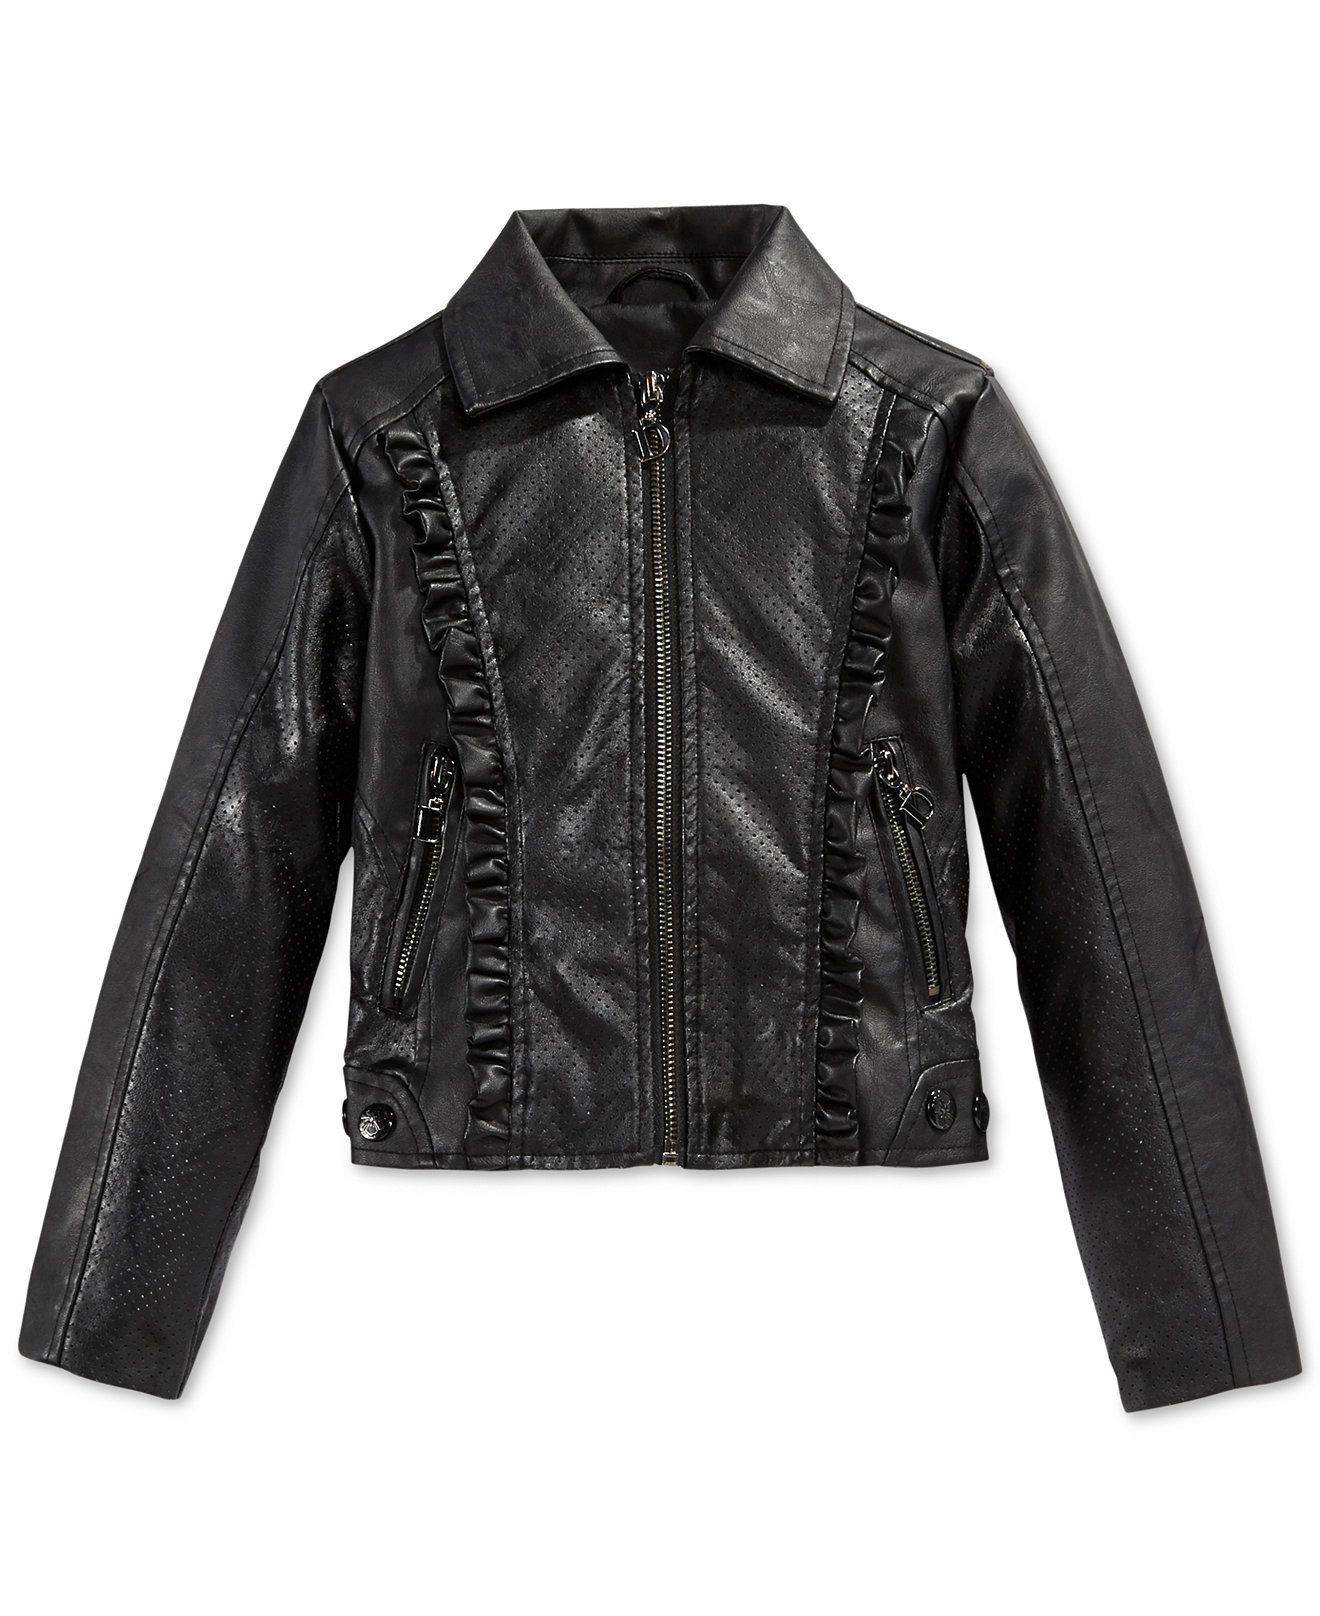 Urban Republic Girls' Perforated Faux-Leather Jacket - Kids Girls 7-16 - Macy's